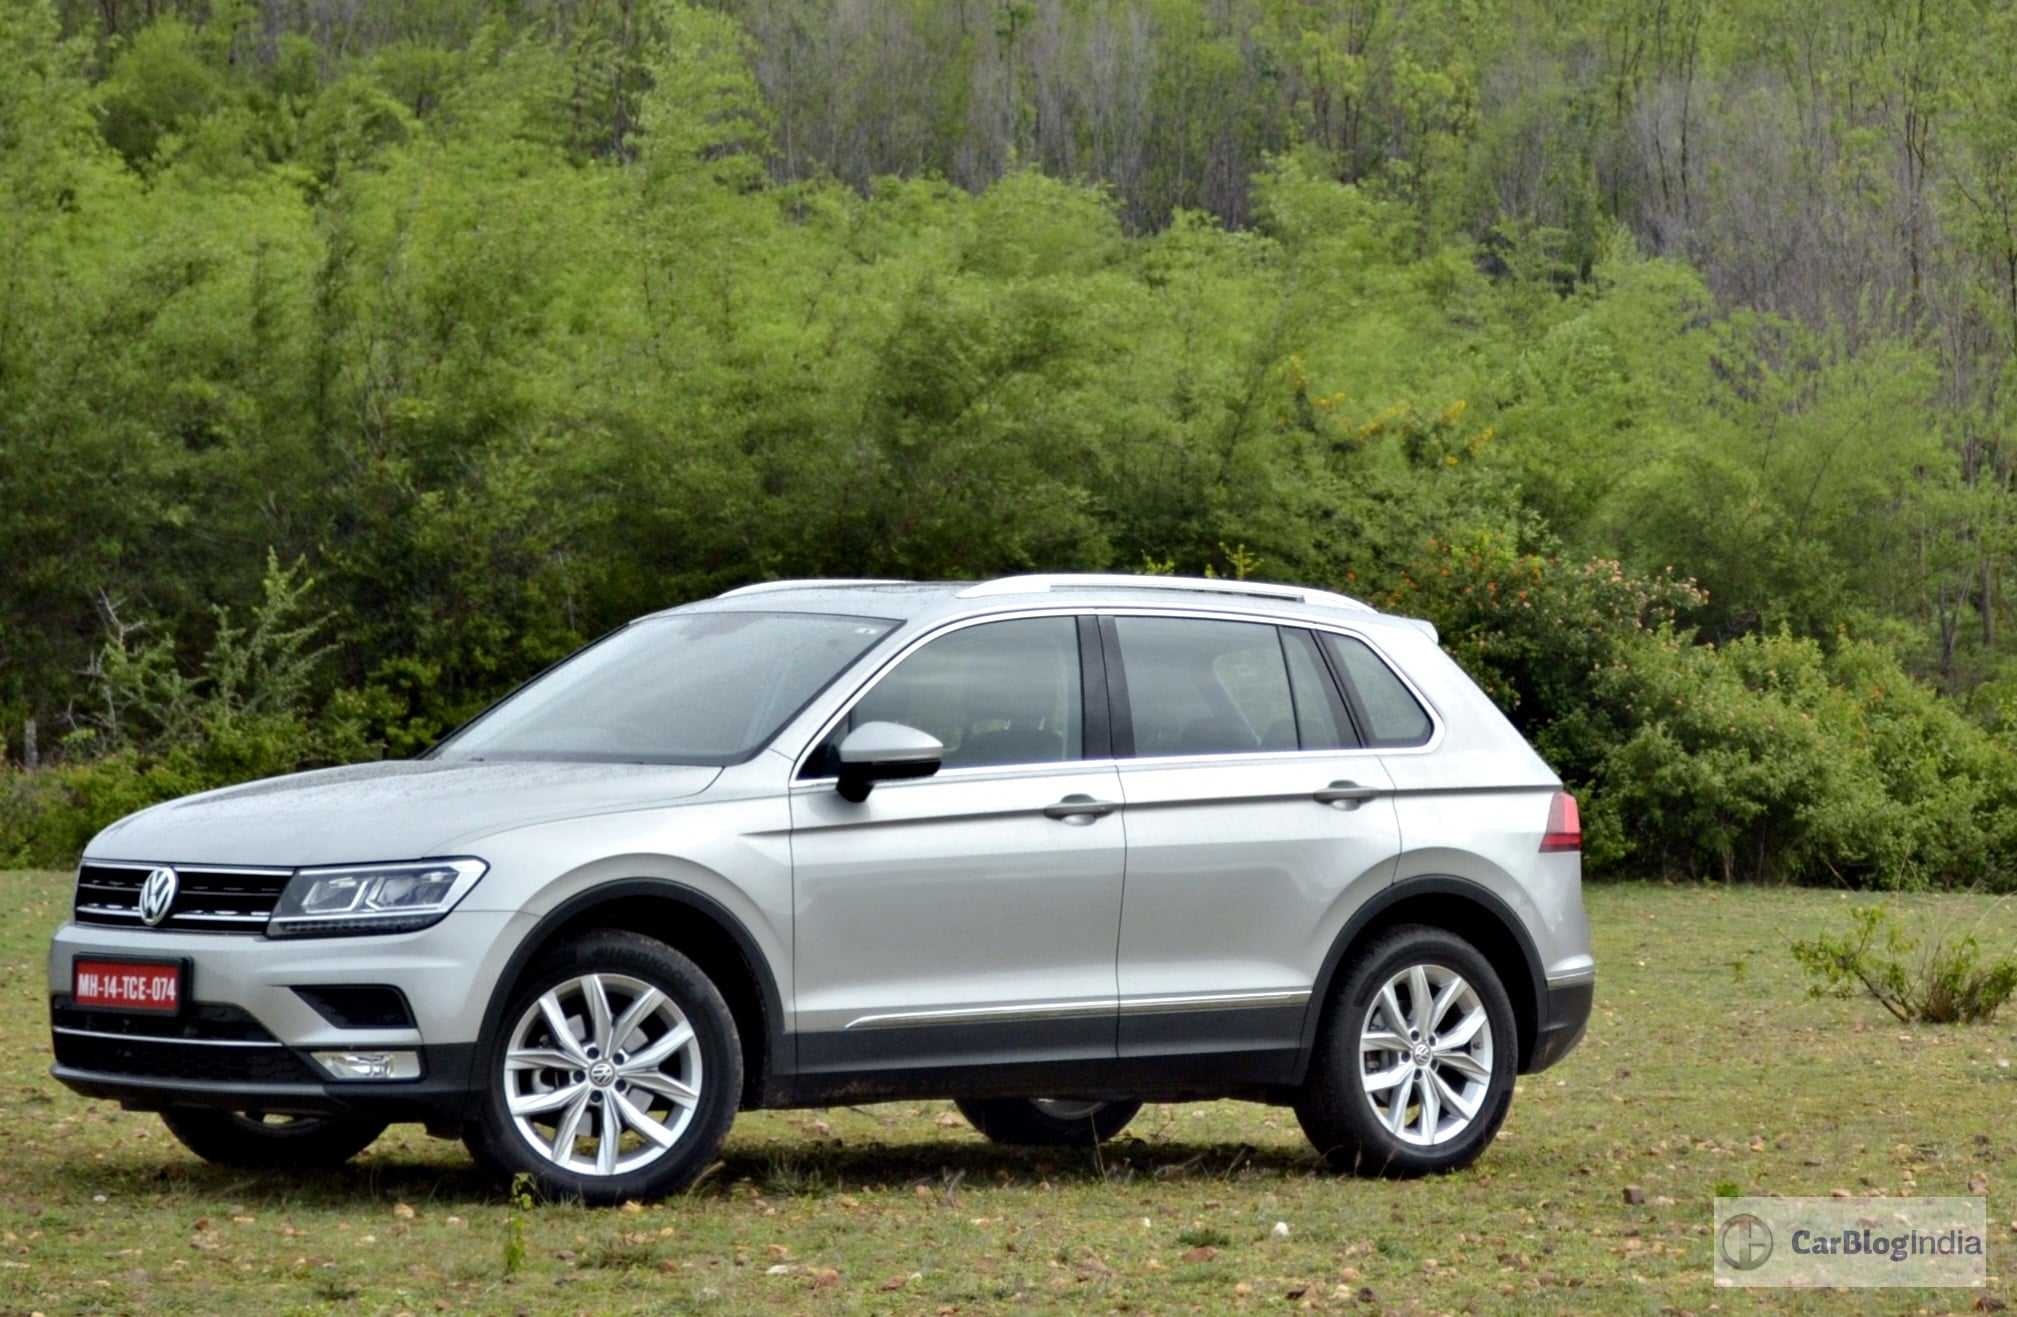 volkswagen tiguan test drive review with video images and specs. Black Bedroom Furniture Sets. Home Design Ideas